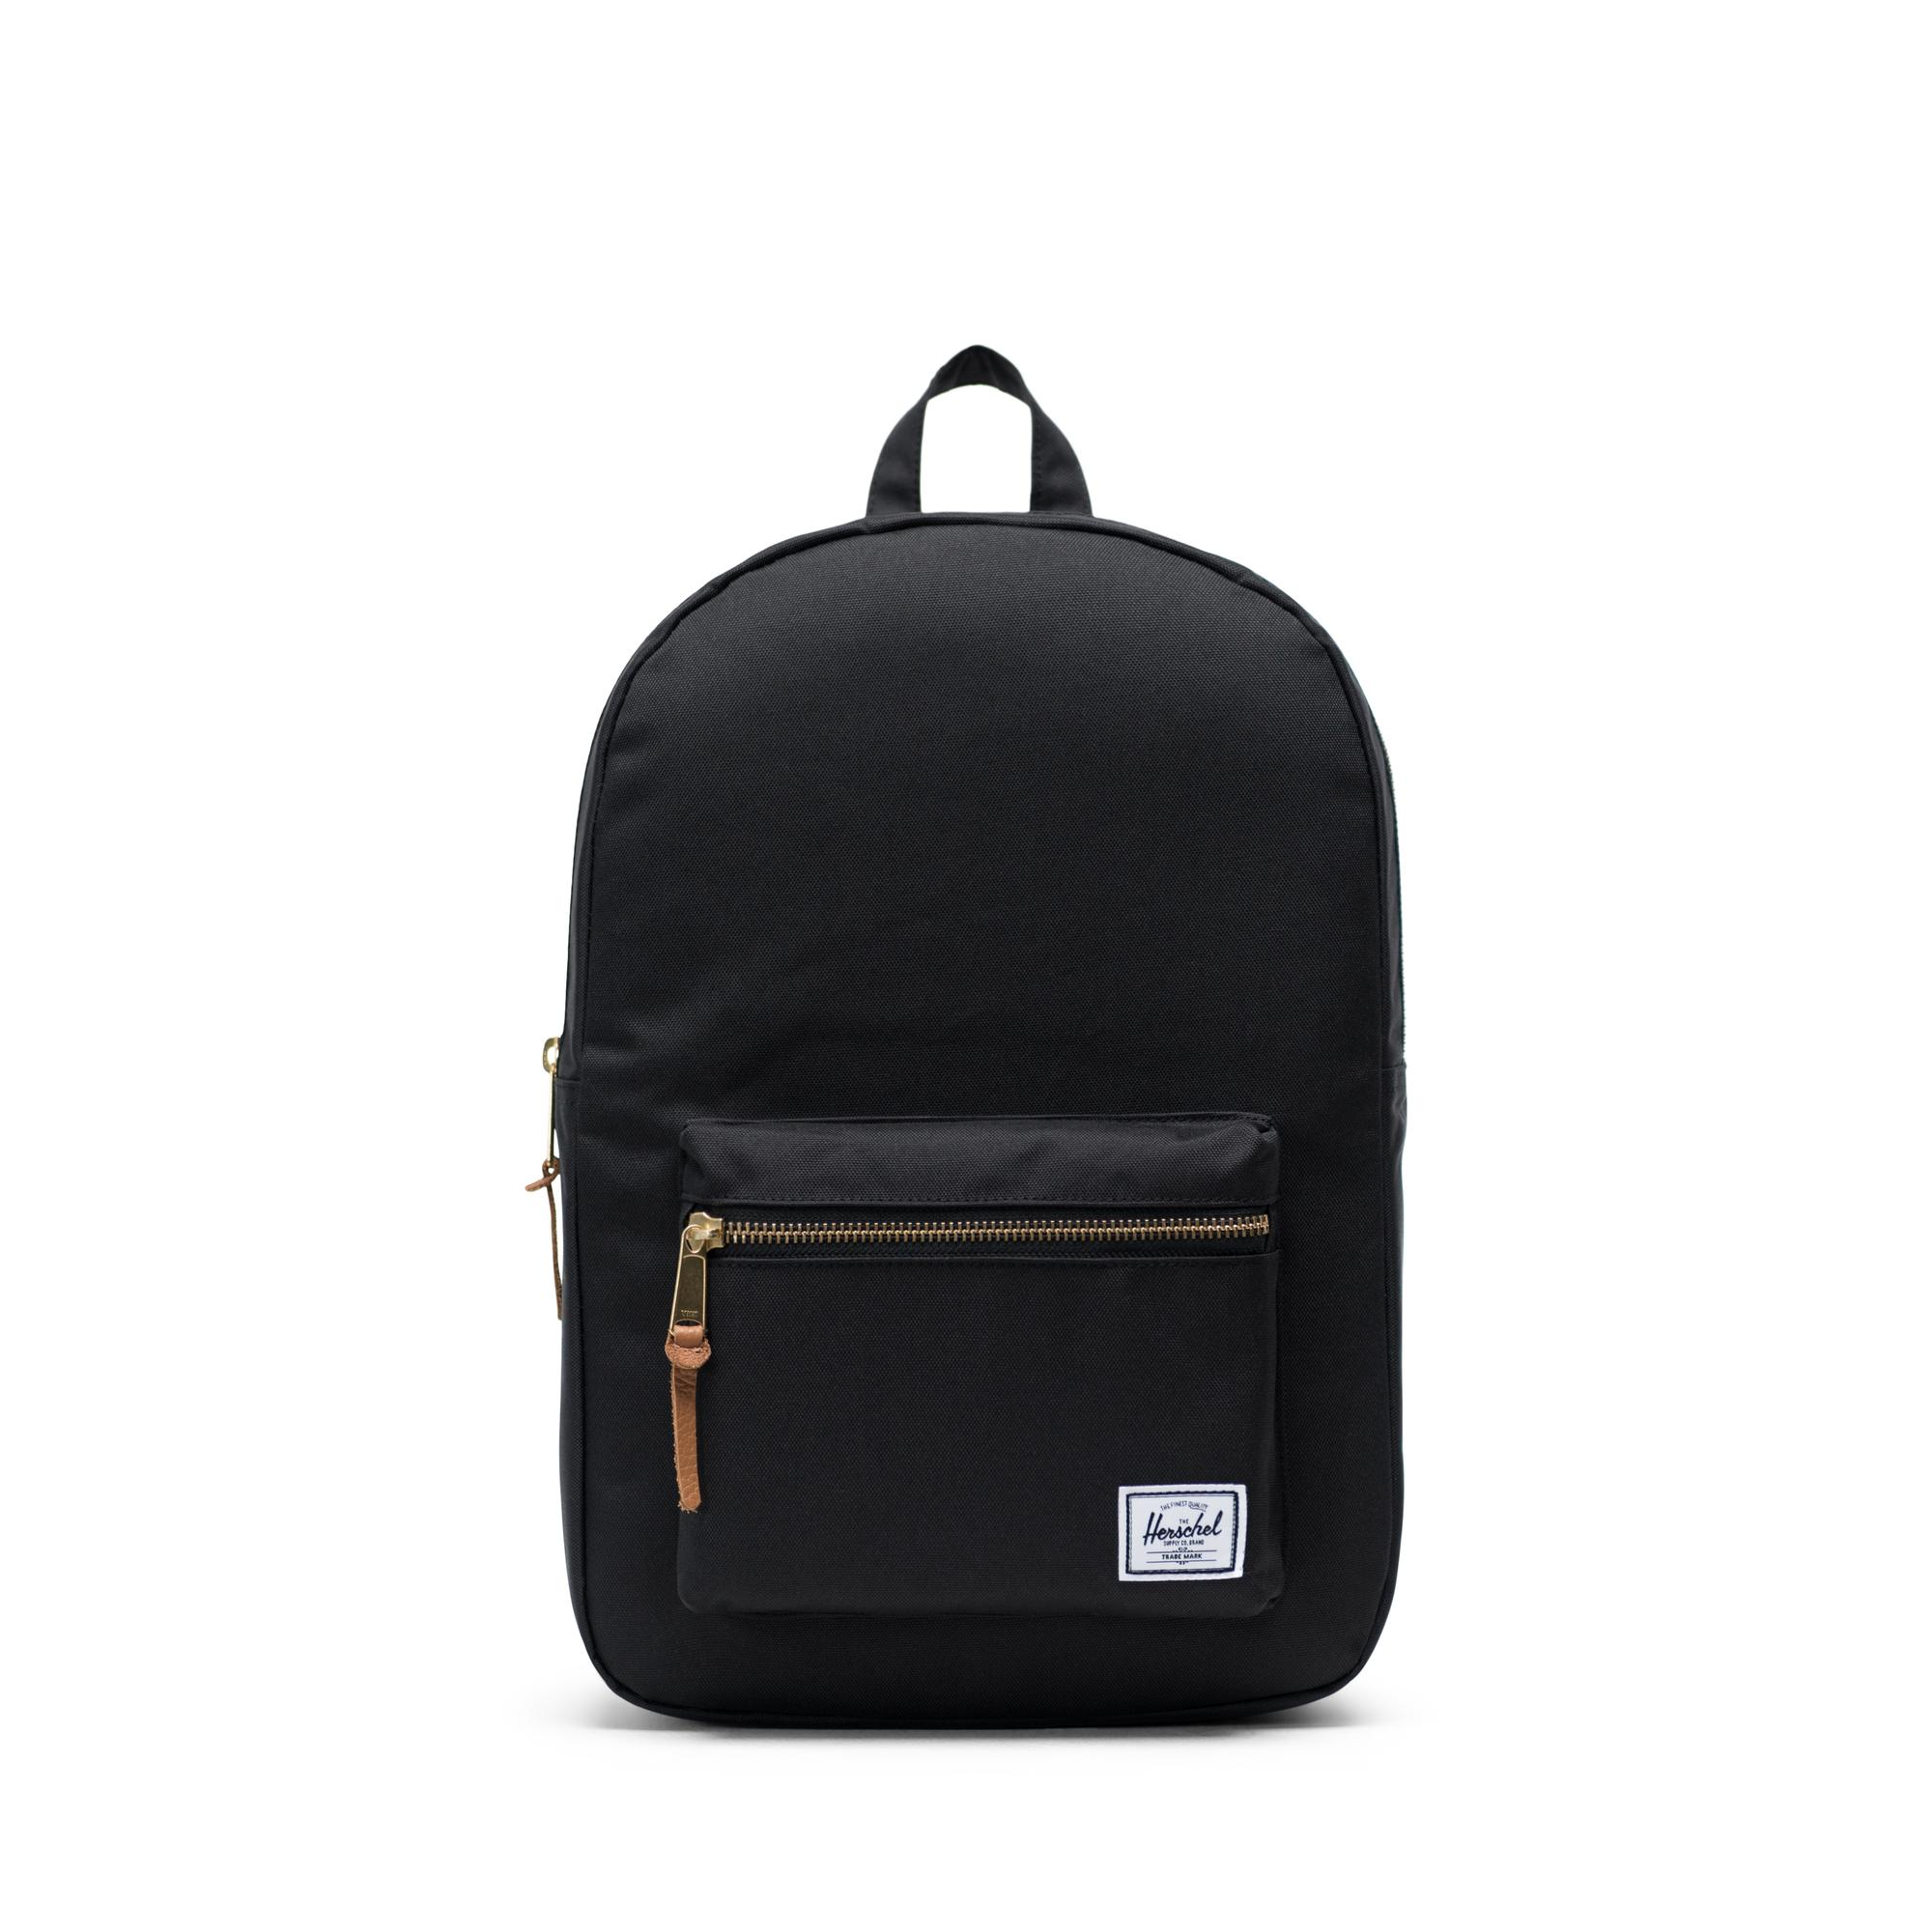 aa34bad1d9 Settlement Backpack Mid-Volume